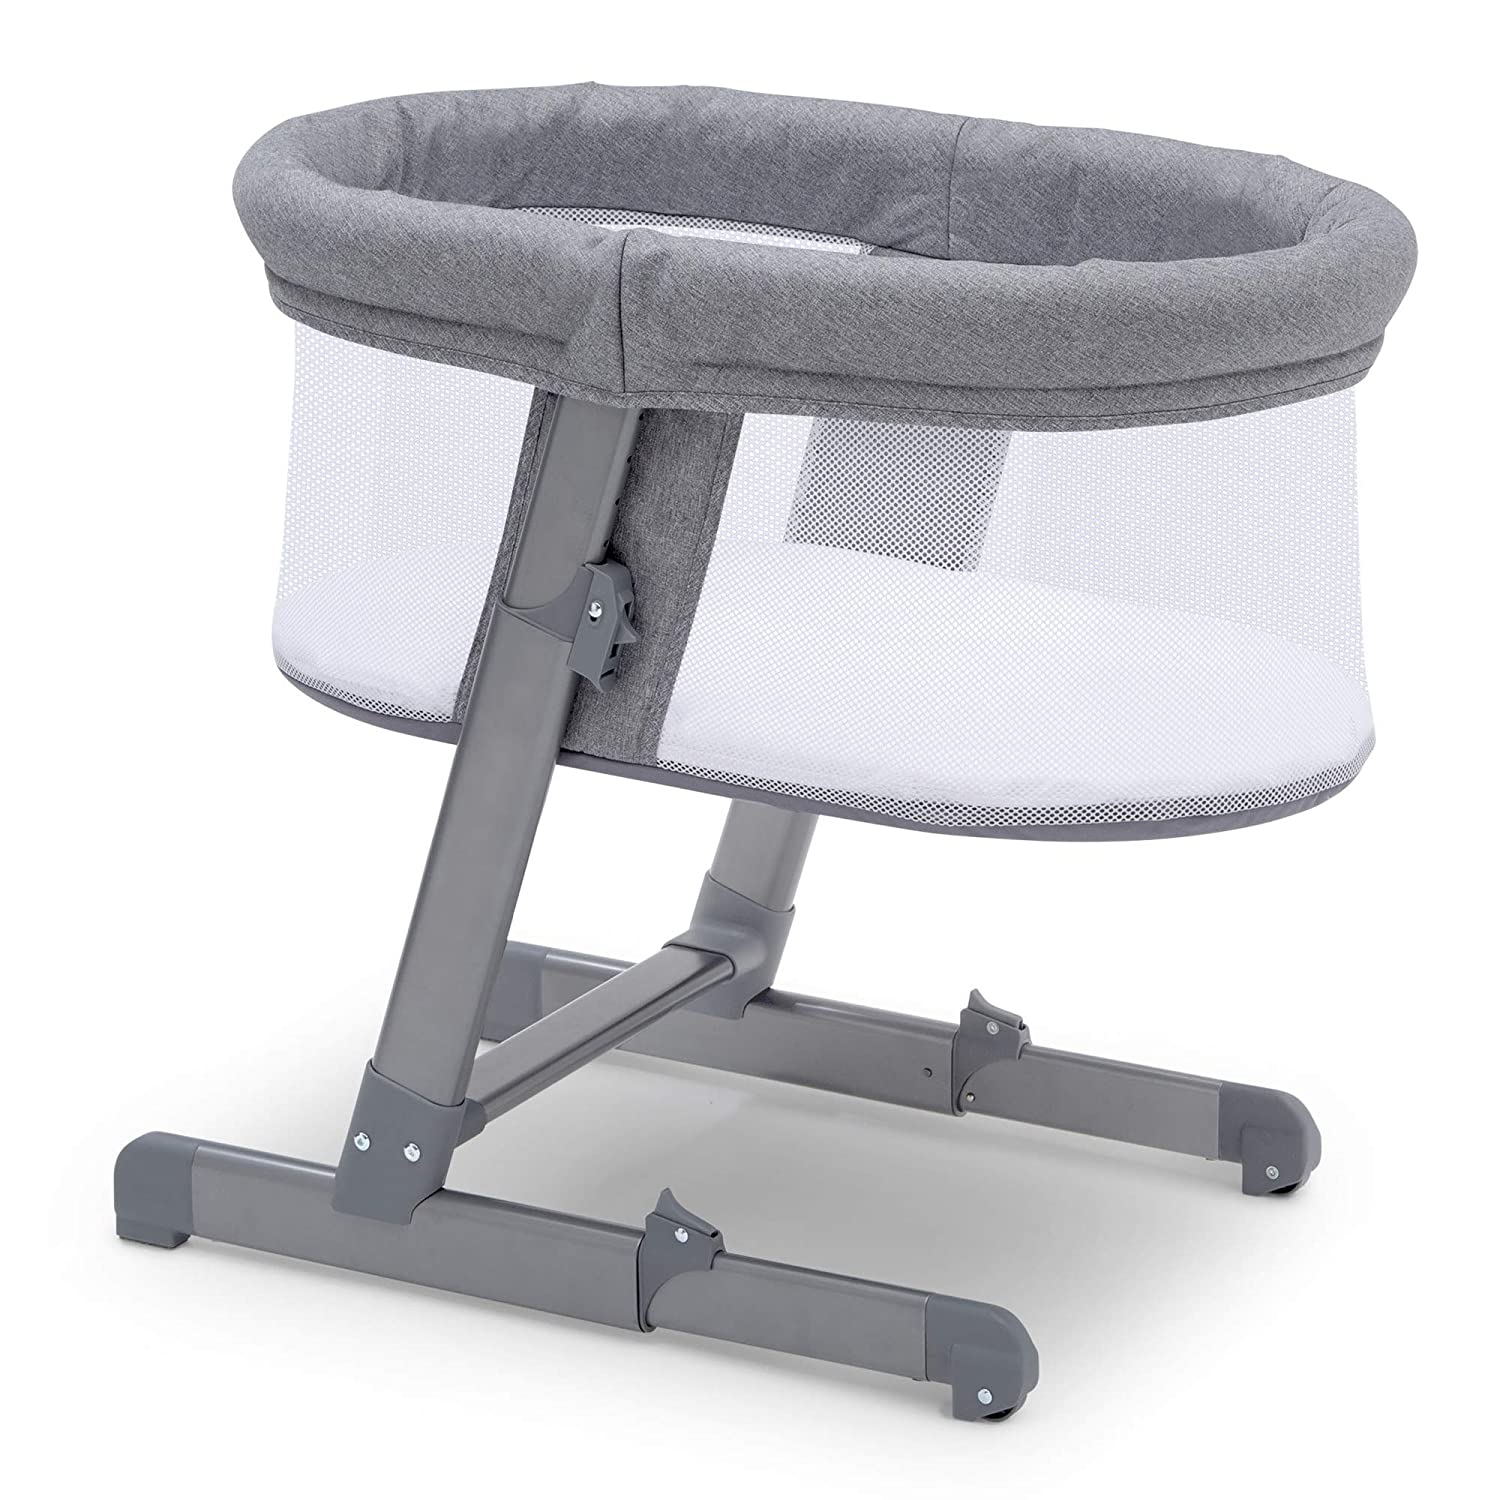 Simmons Kids Oval City Sleeper Bassinet, Grey Tweed Delta Enterprise Corp - PLA 25504-2012